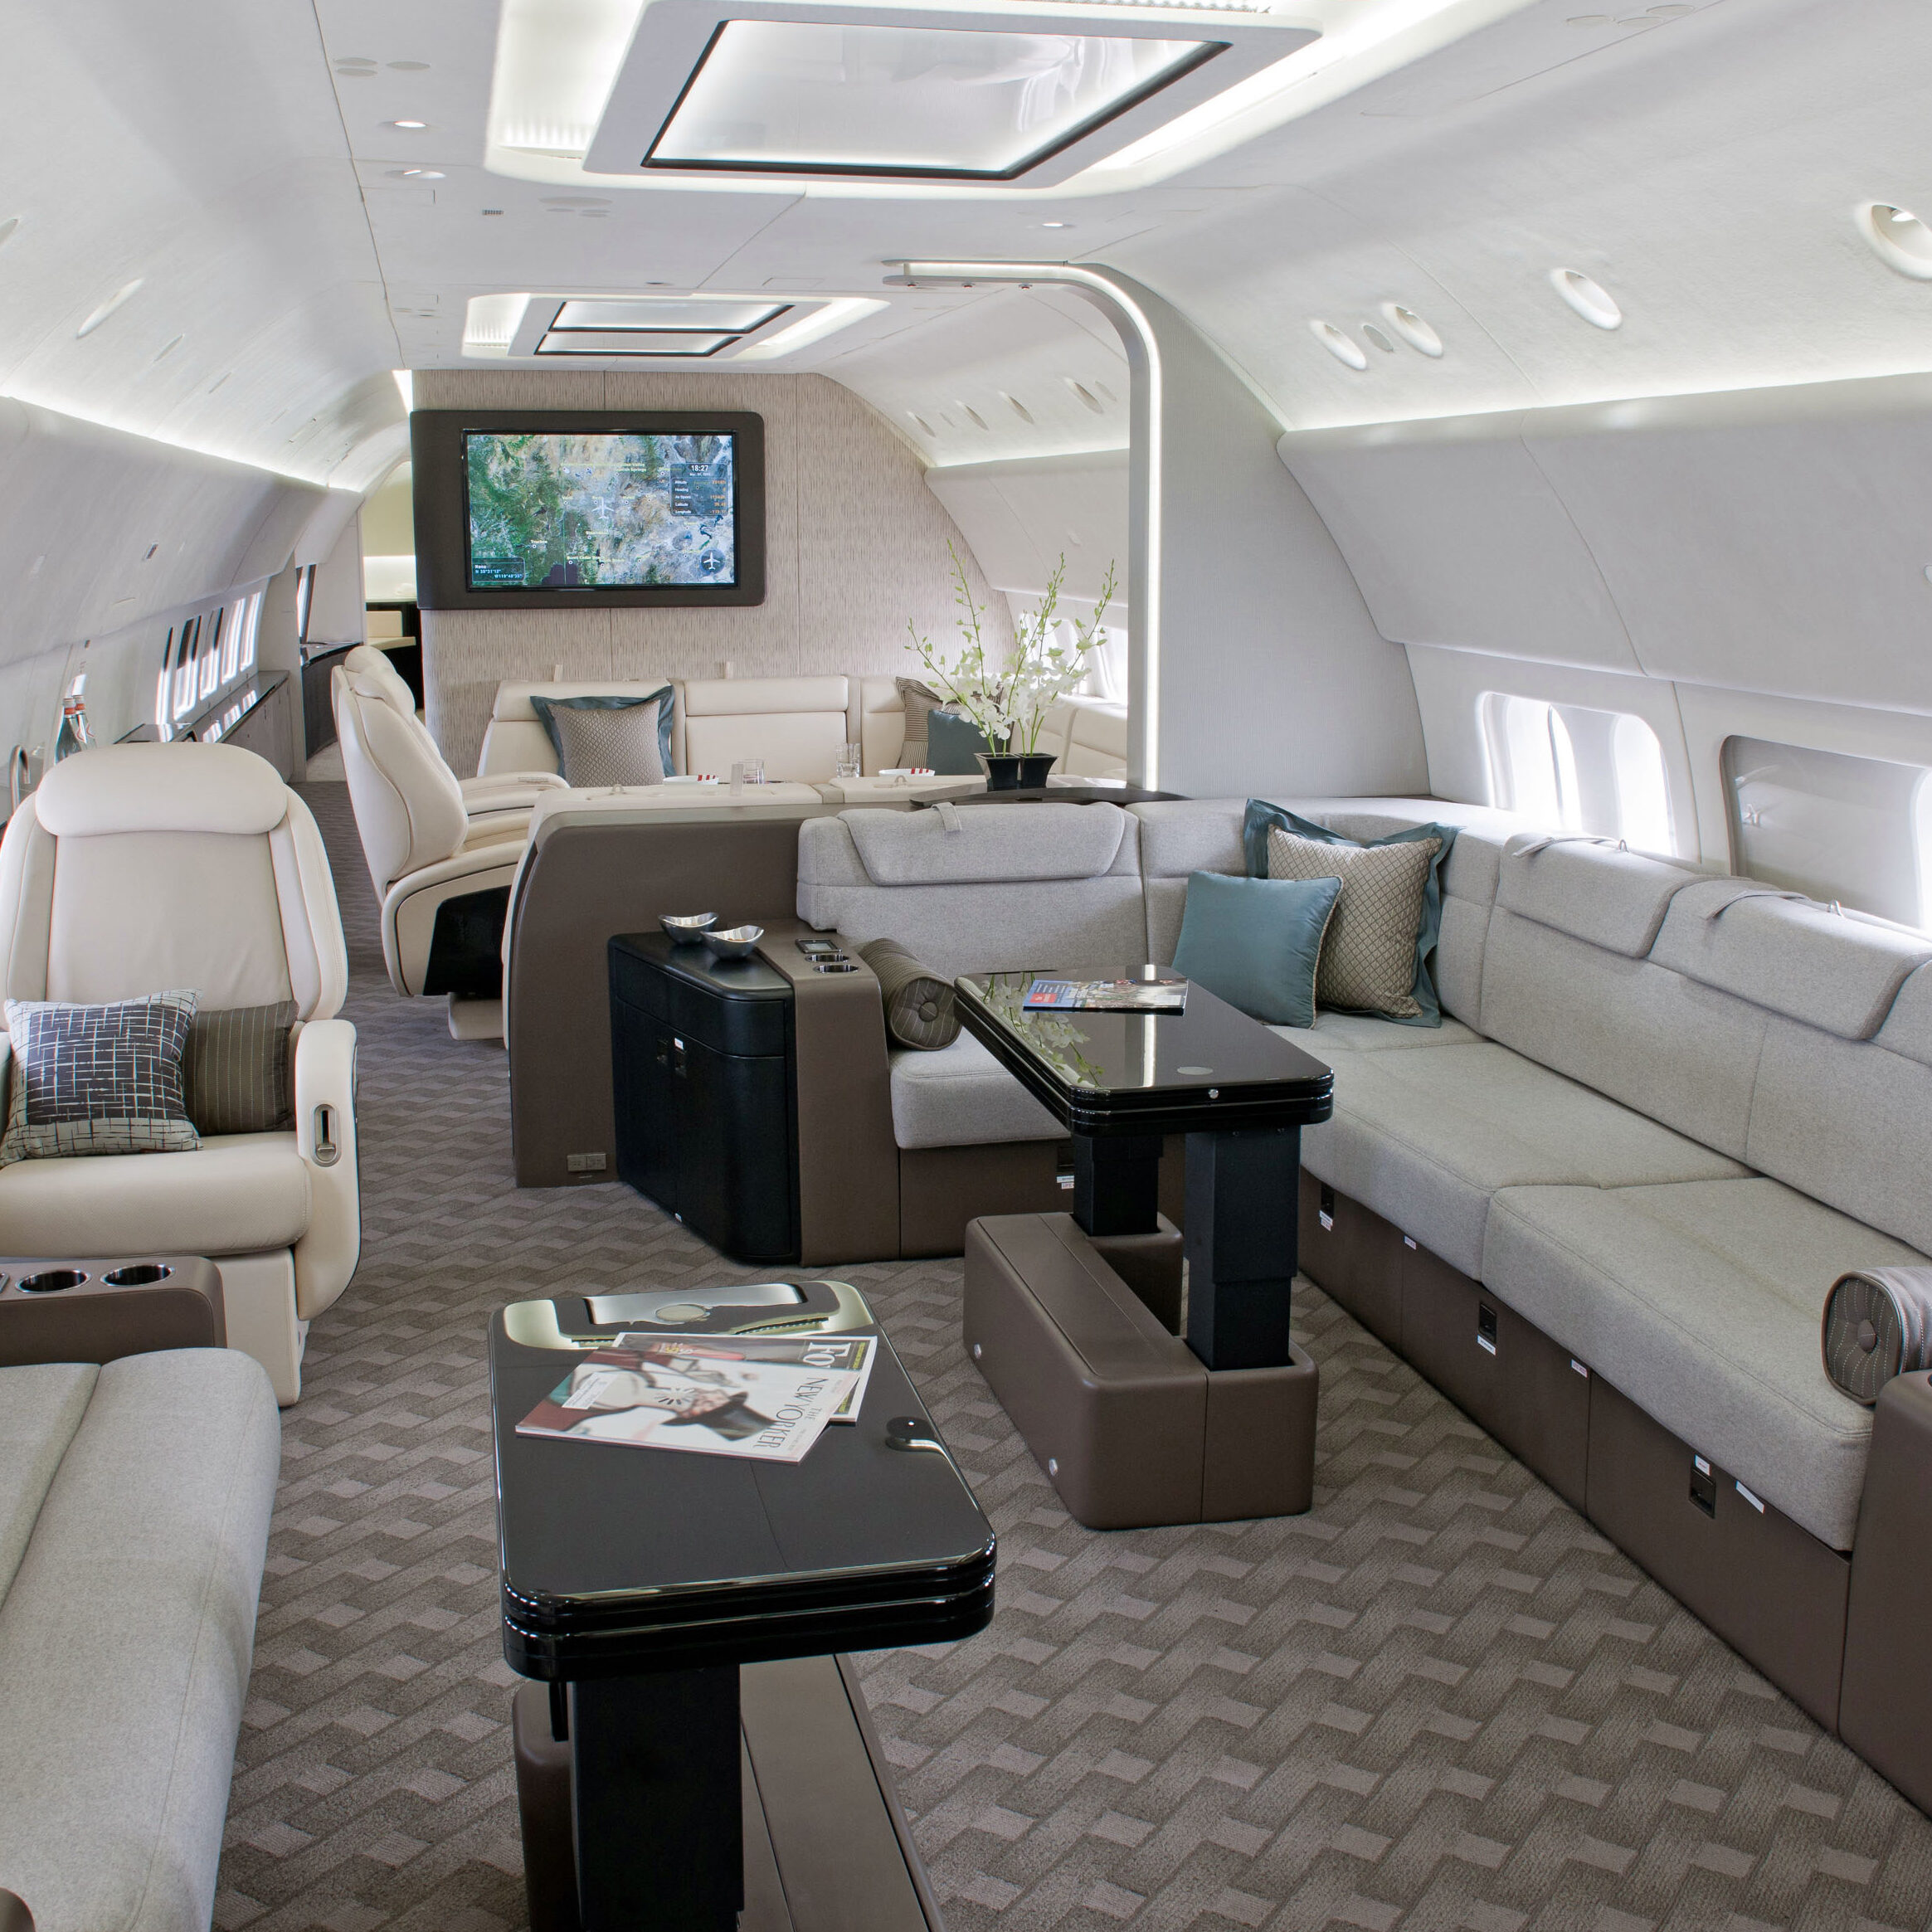 737 BBJ Interior and Exterior Photos K65613-02